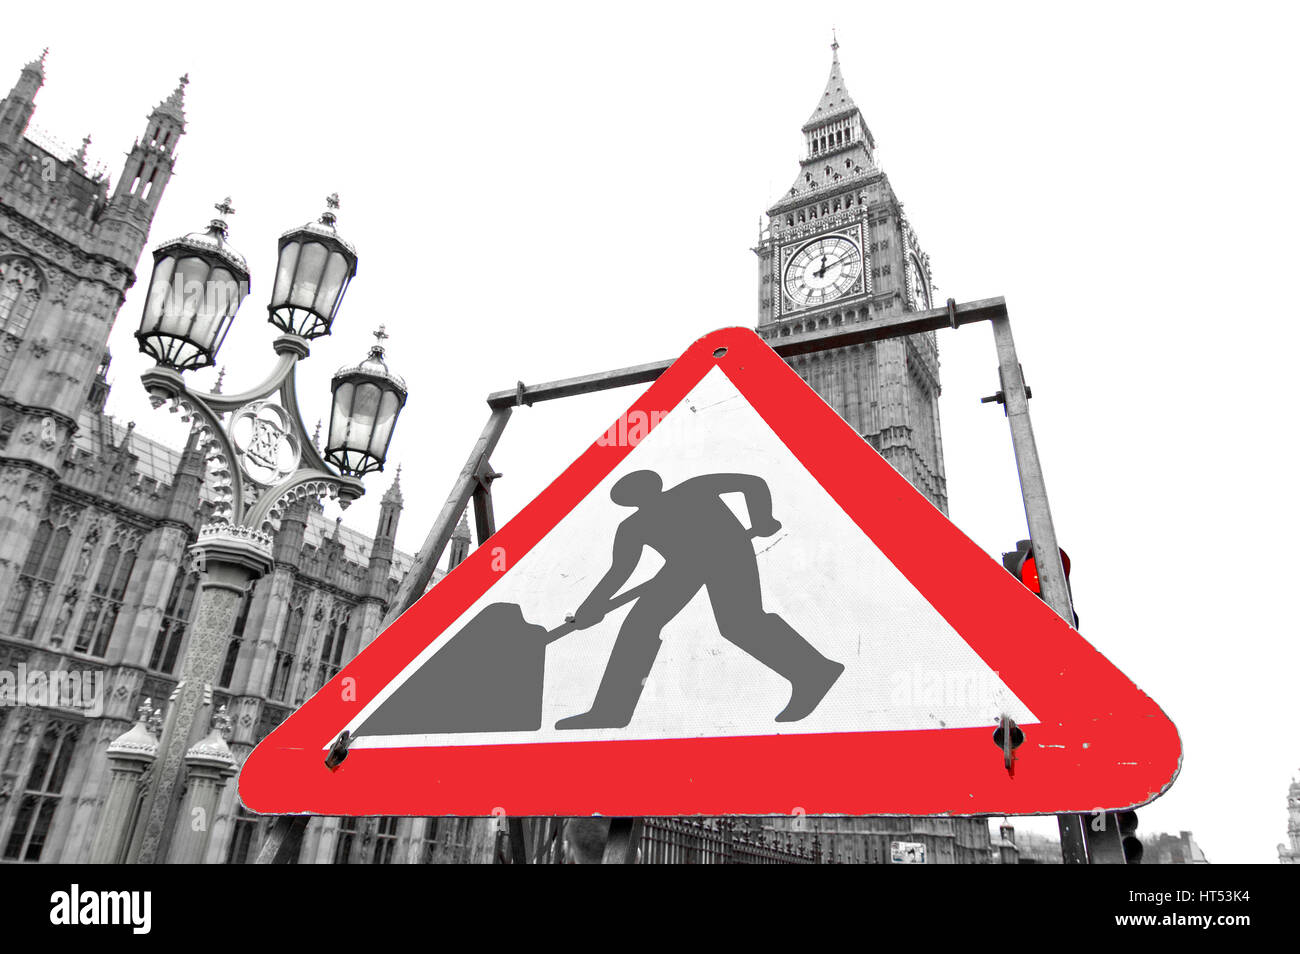 London - March 14, 2015: Work in progress sign near British Parliament. This image can be used to illustrate political - Stock Image